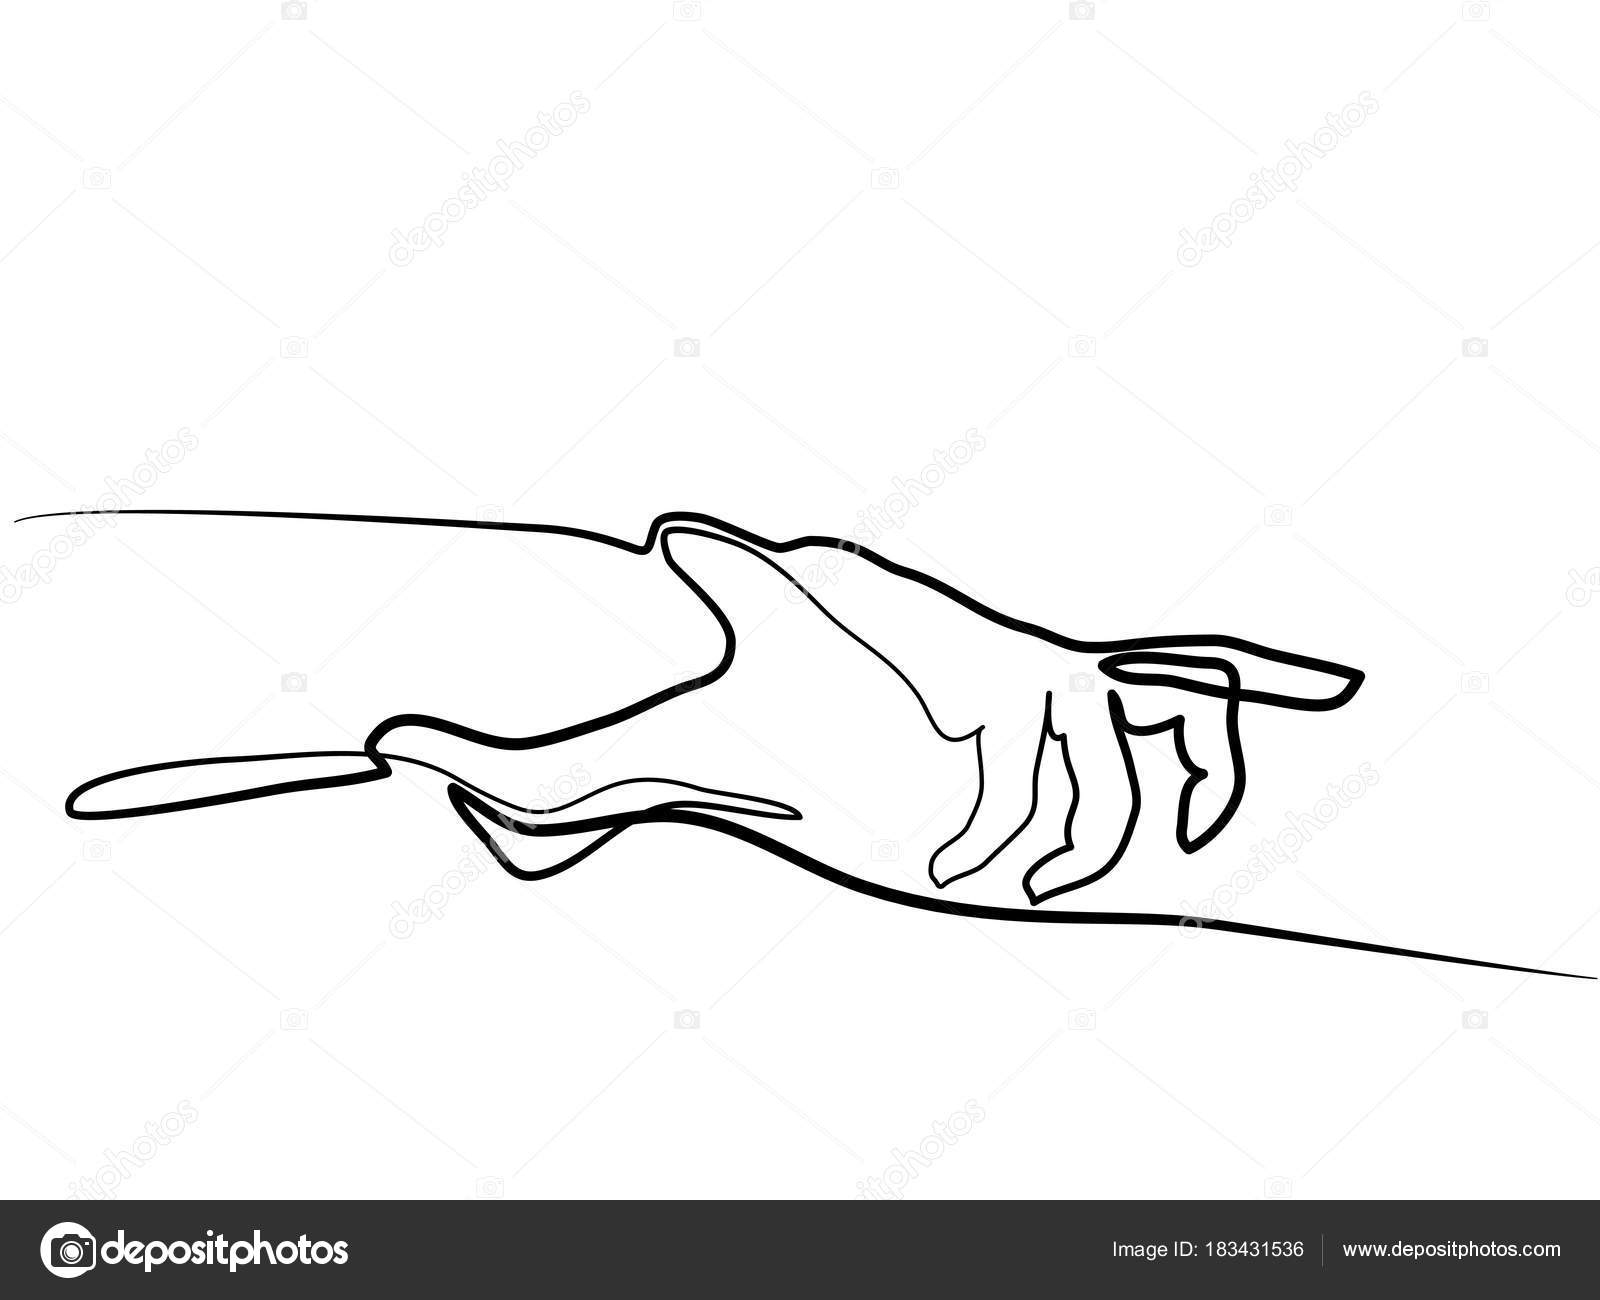 D Line Drawing Hand : Continuous line drawing of holding hands together — stock